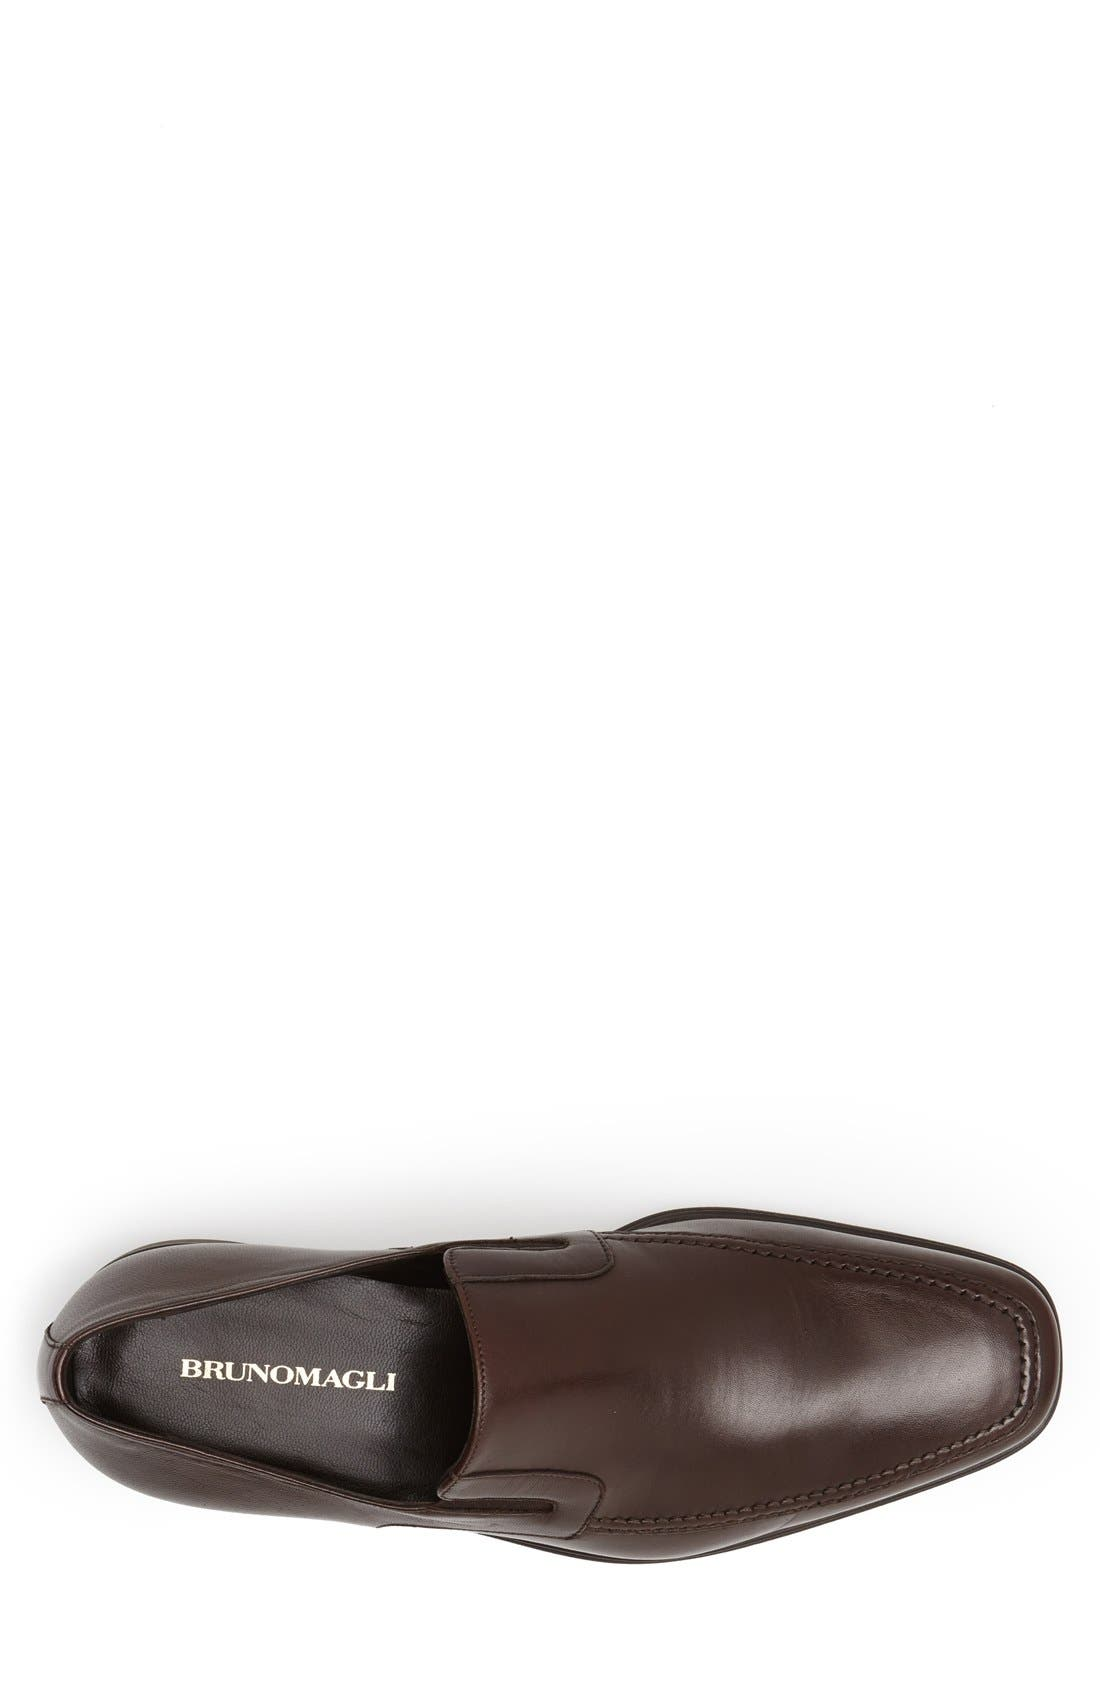 Alternate Image 3  - Bruno Magli 'Raging' Loafer (Men)